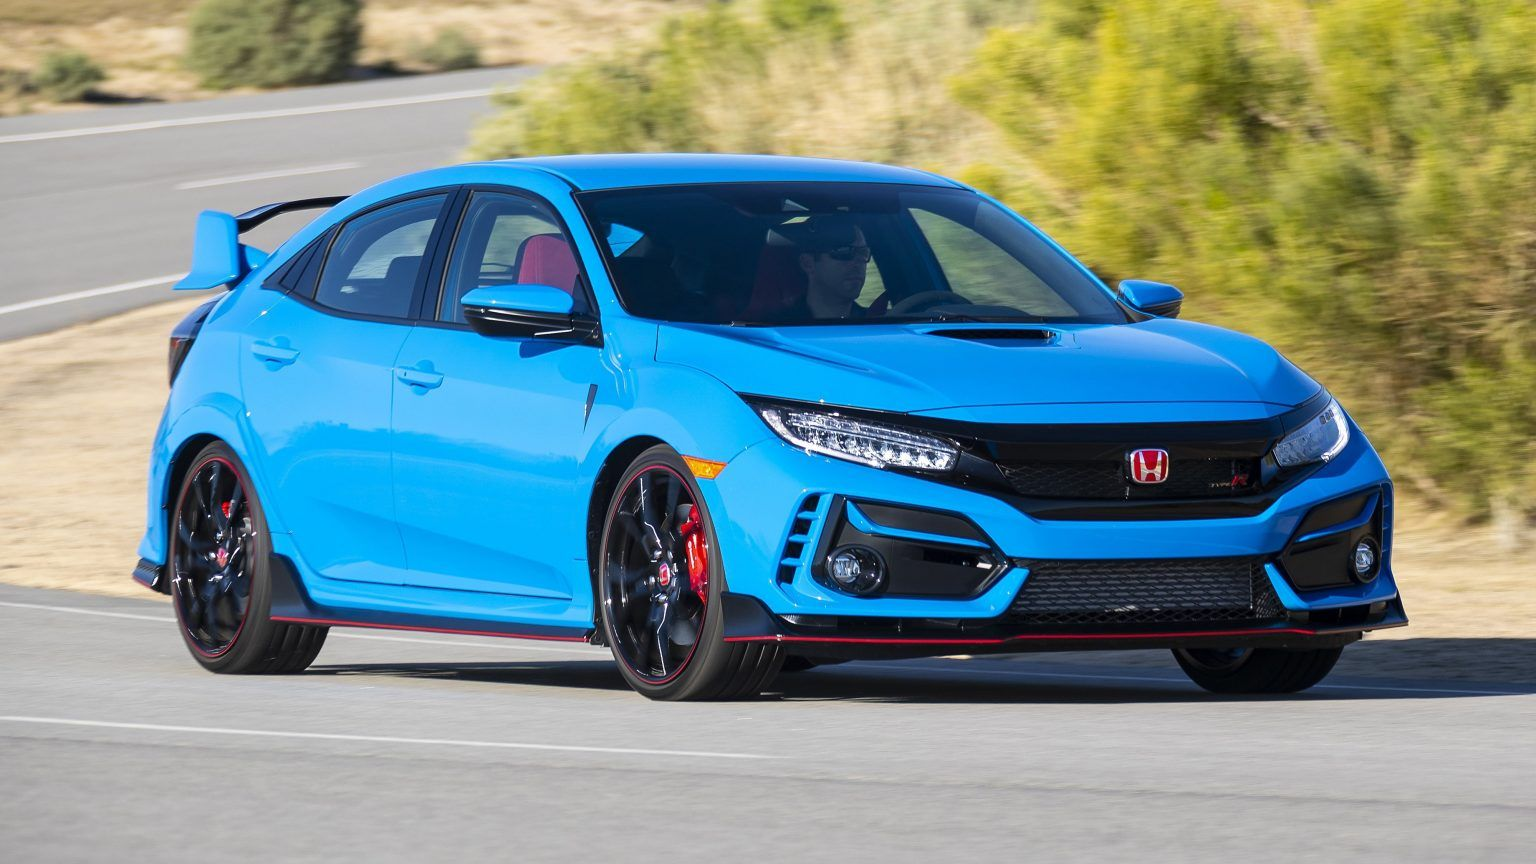 2020 Honda Civic at Sport Car 2020 in 2020 Honda civic